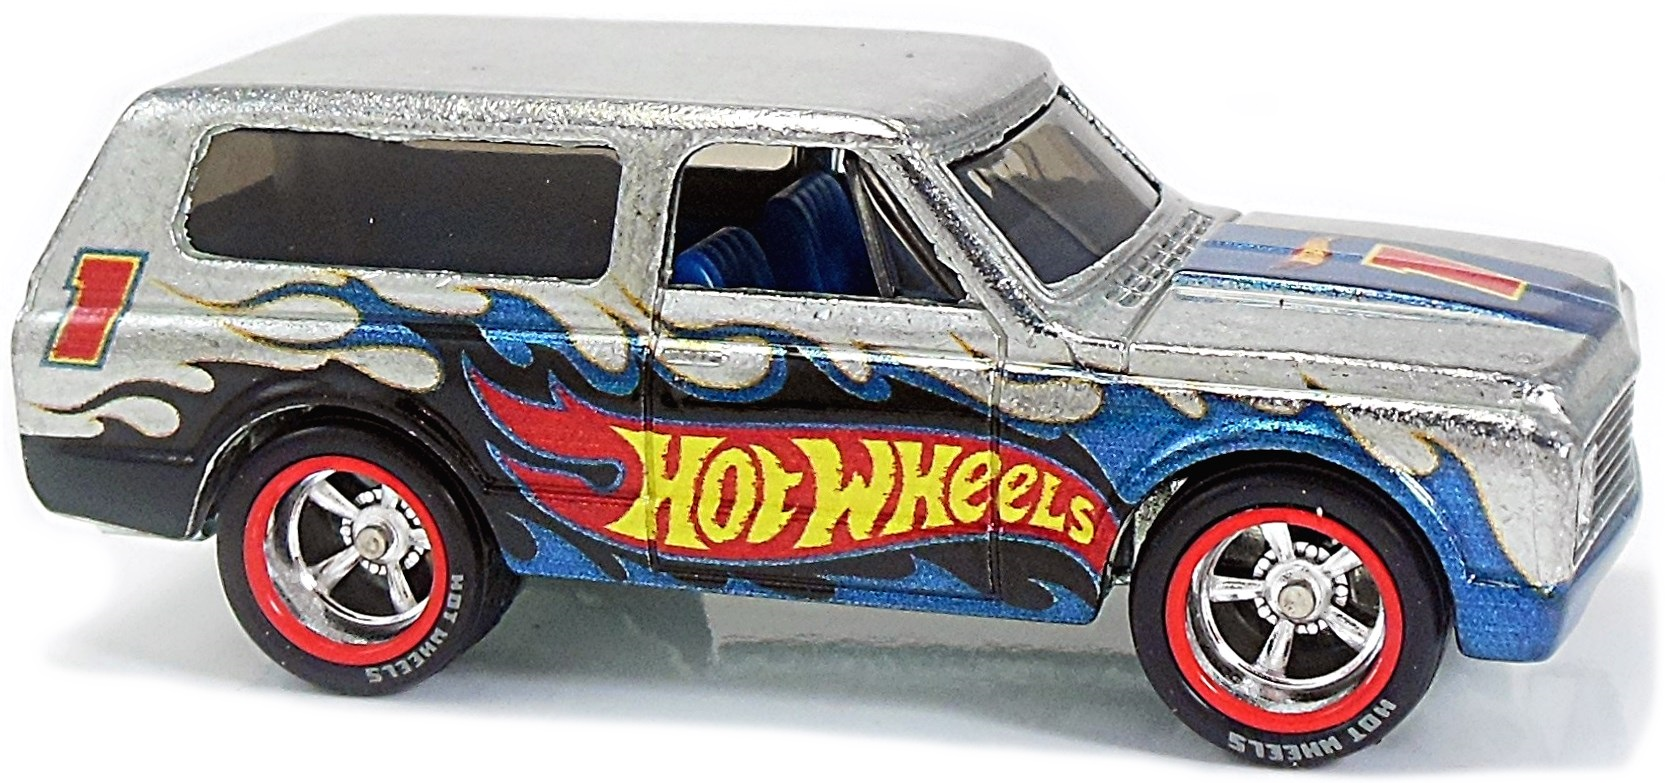 2018 Collector Edition | Hot Wheels Wiki | FANDOM powered by Wikia